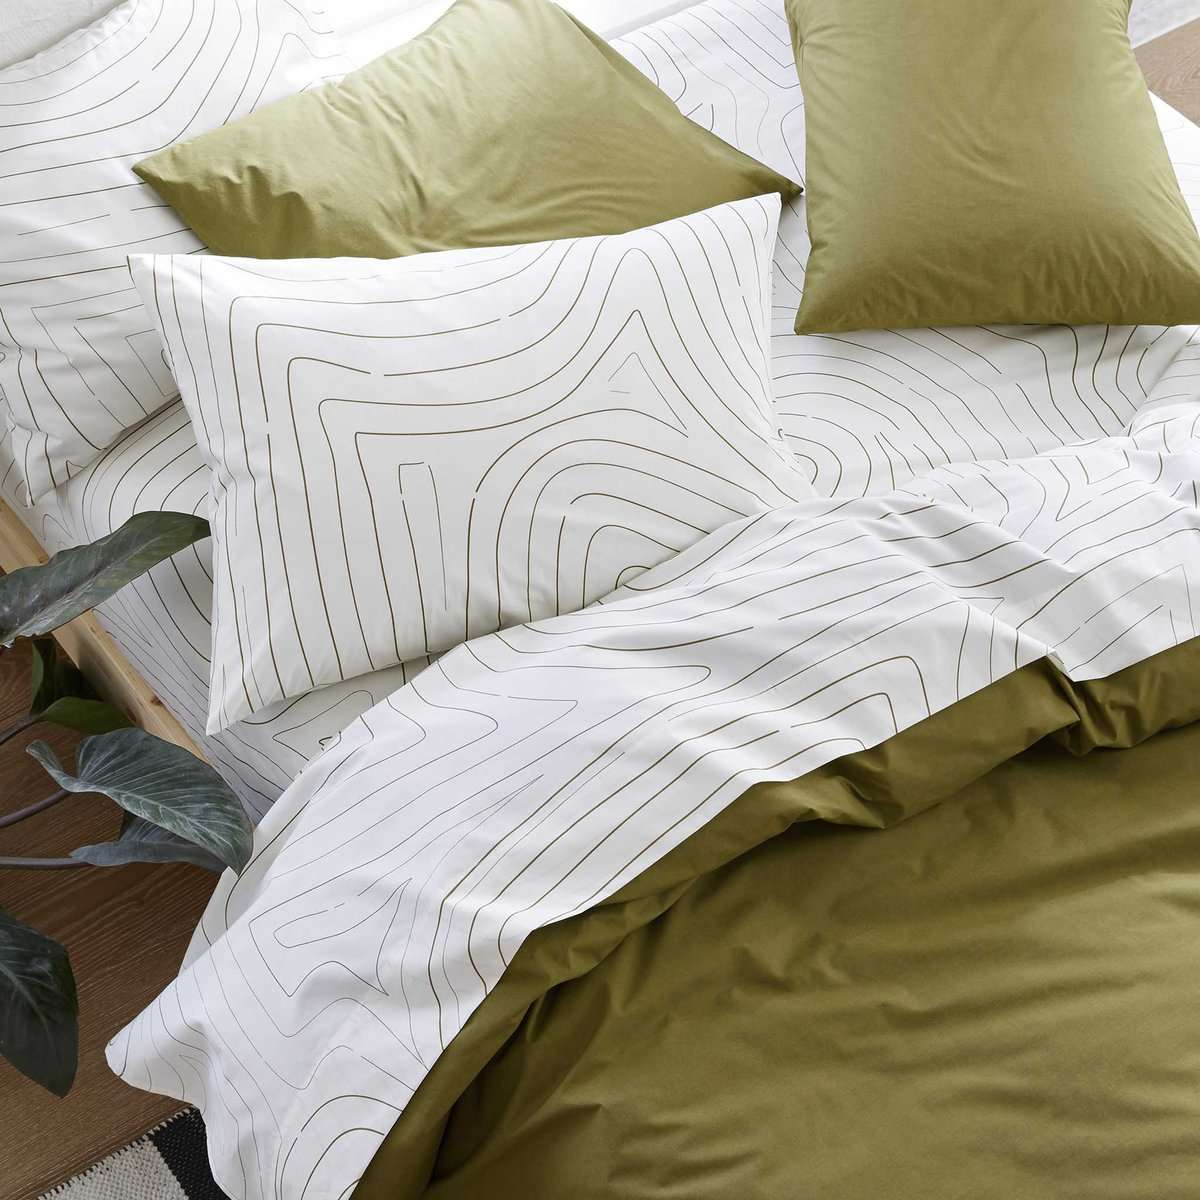 Bed with white sheets with wave motif and green duvet